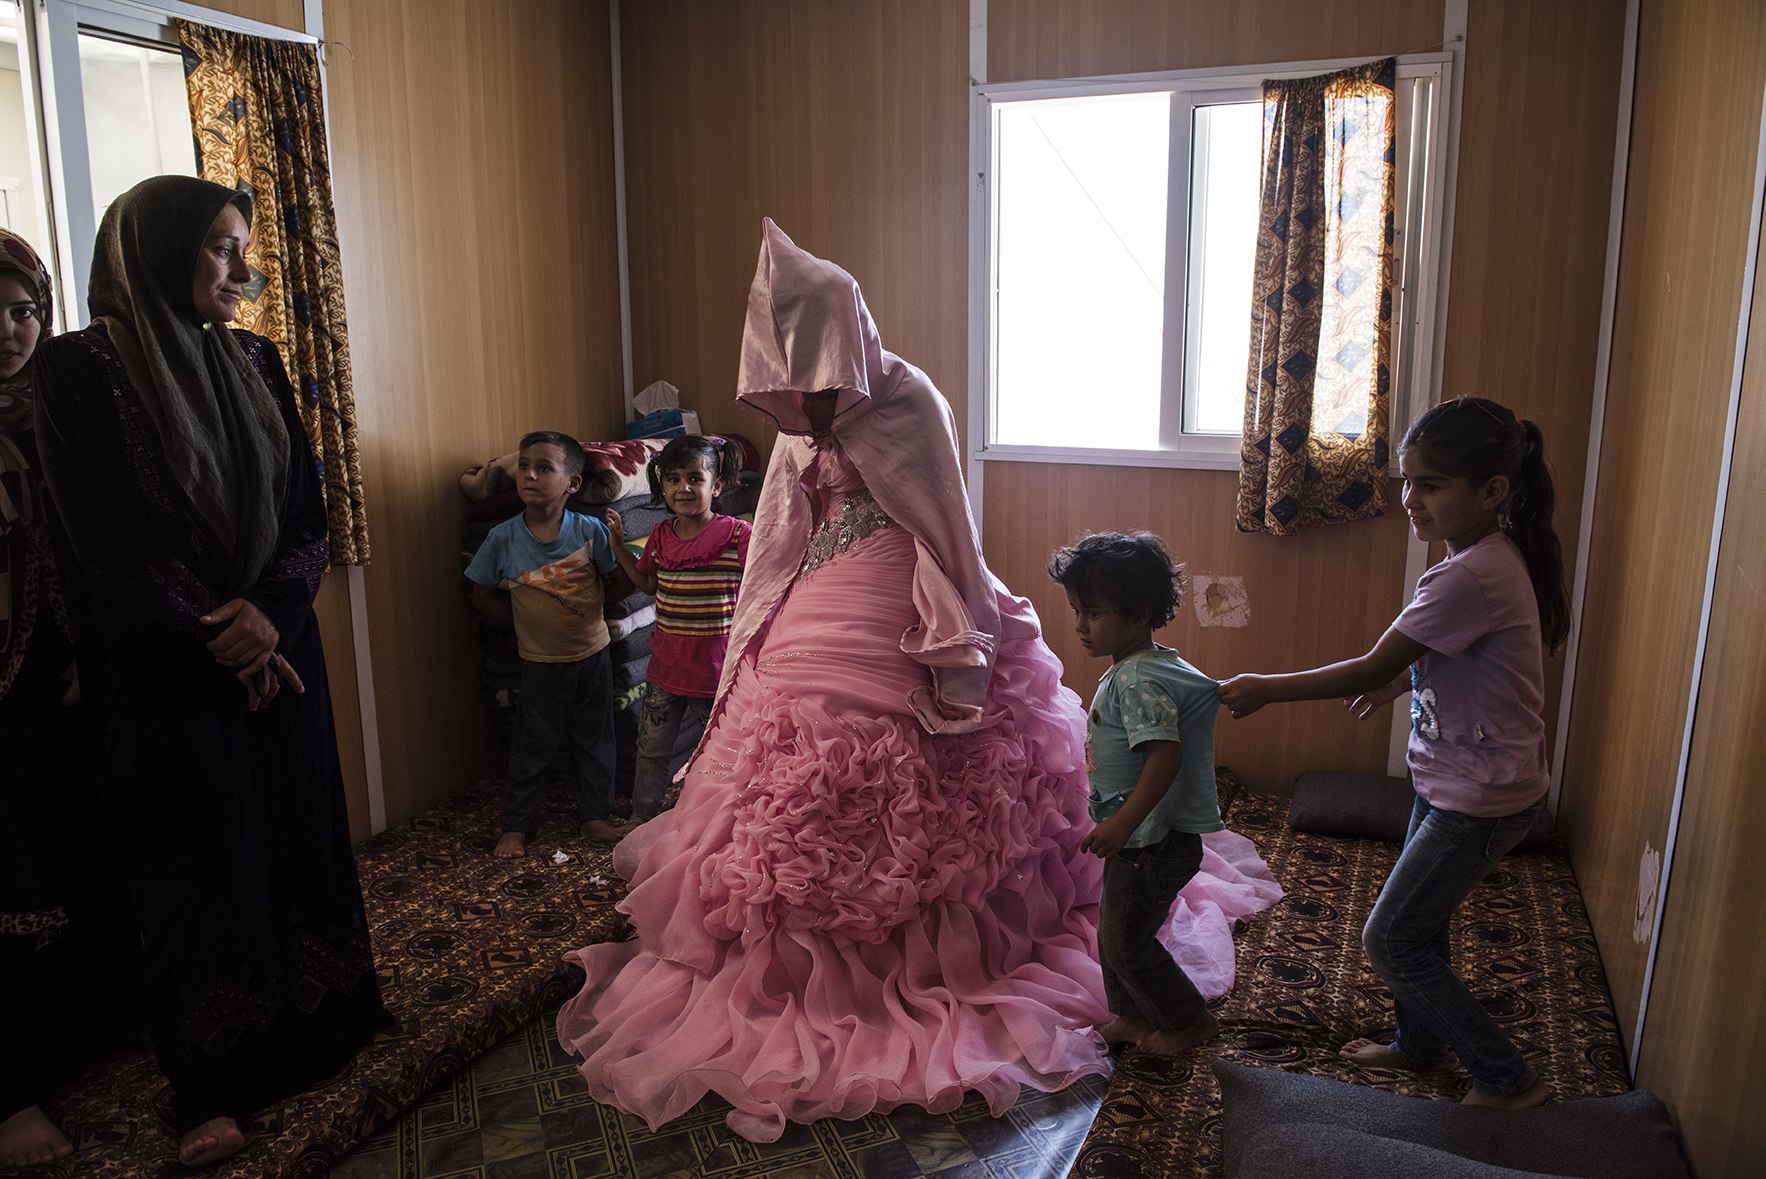 Rahaf Yousef, 13, a Syrian refugee from Daraa, poses for a portrait in her family's trailer as she is surrounded by female relatives on the day of her engagement party at the Zaatari refugee camp in Jordan, August 29, 2014. Rahaf will get married to another Syrian refugee, Mohammed, 18, in about 20 days.  While marriage under the age of eighteen was a common Syrian tradition before the start of the civil war, more and more Syrian girls are marrying at a younger age because of the insecurity of the war,  because many families feel the girls in their family may be sexually harassed if they are not under the care of a husband, and because of prospect of alleviating the financial burden of one more mouth to feed.